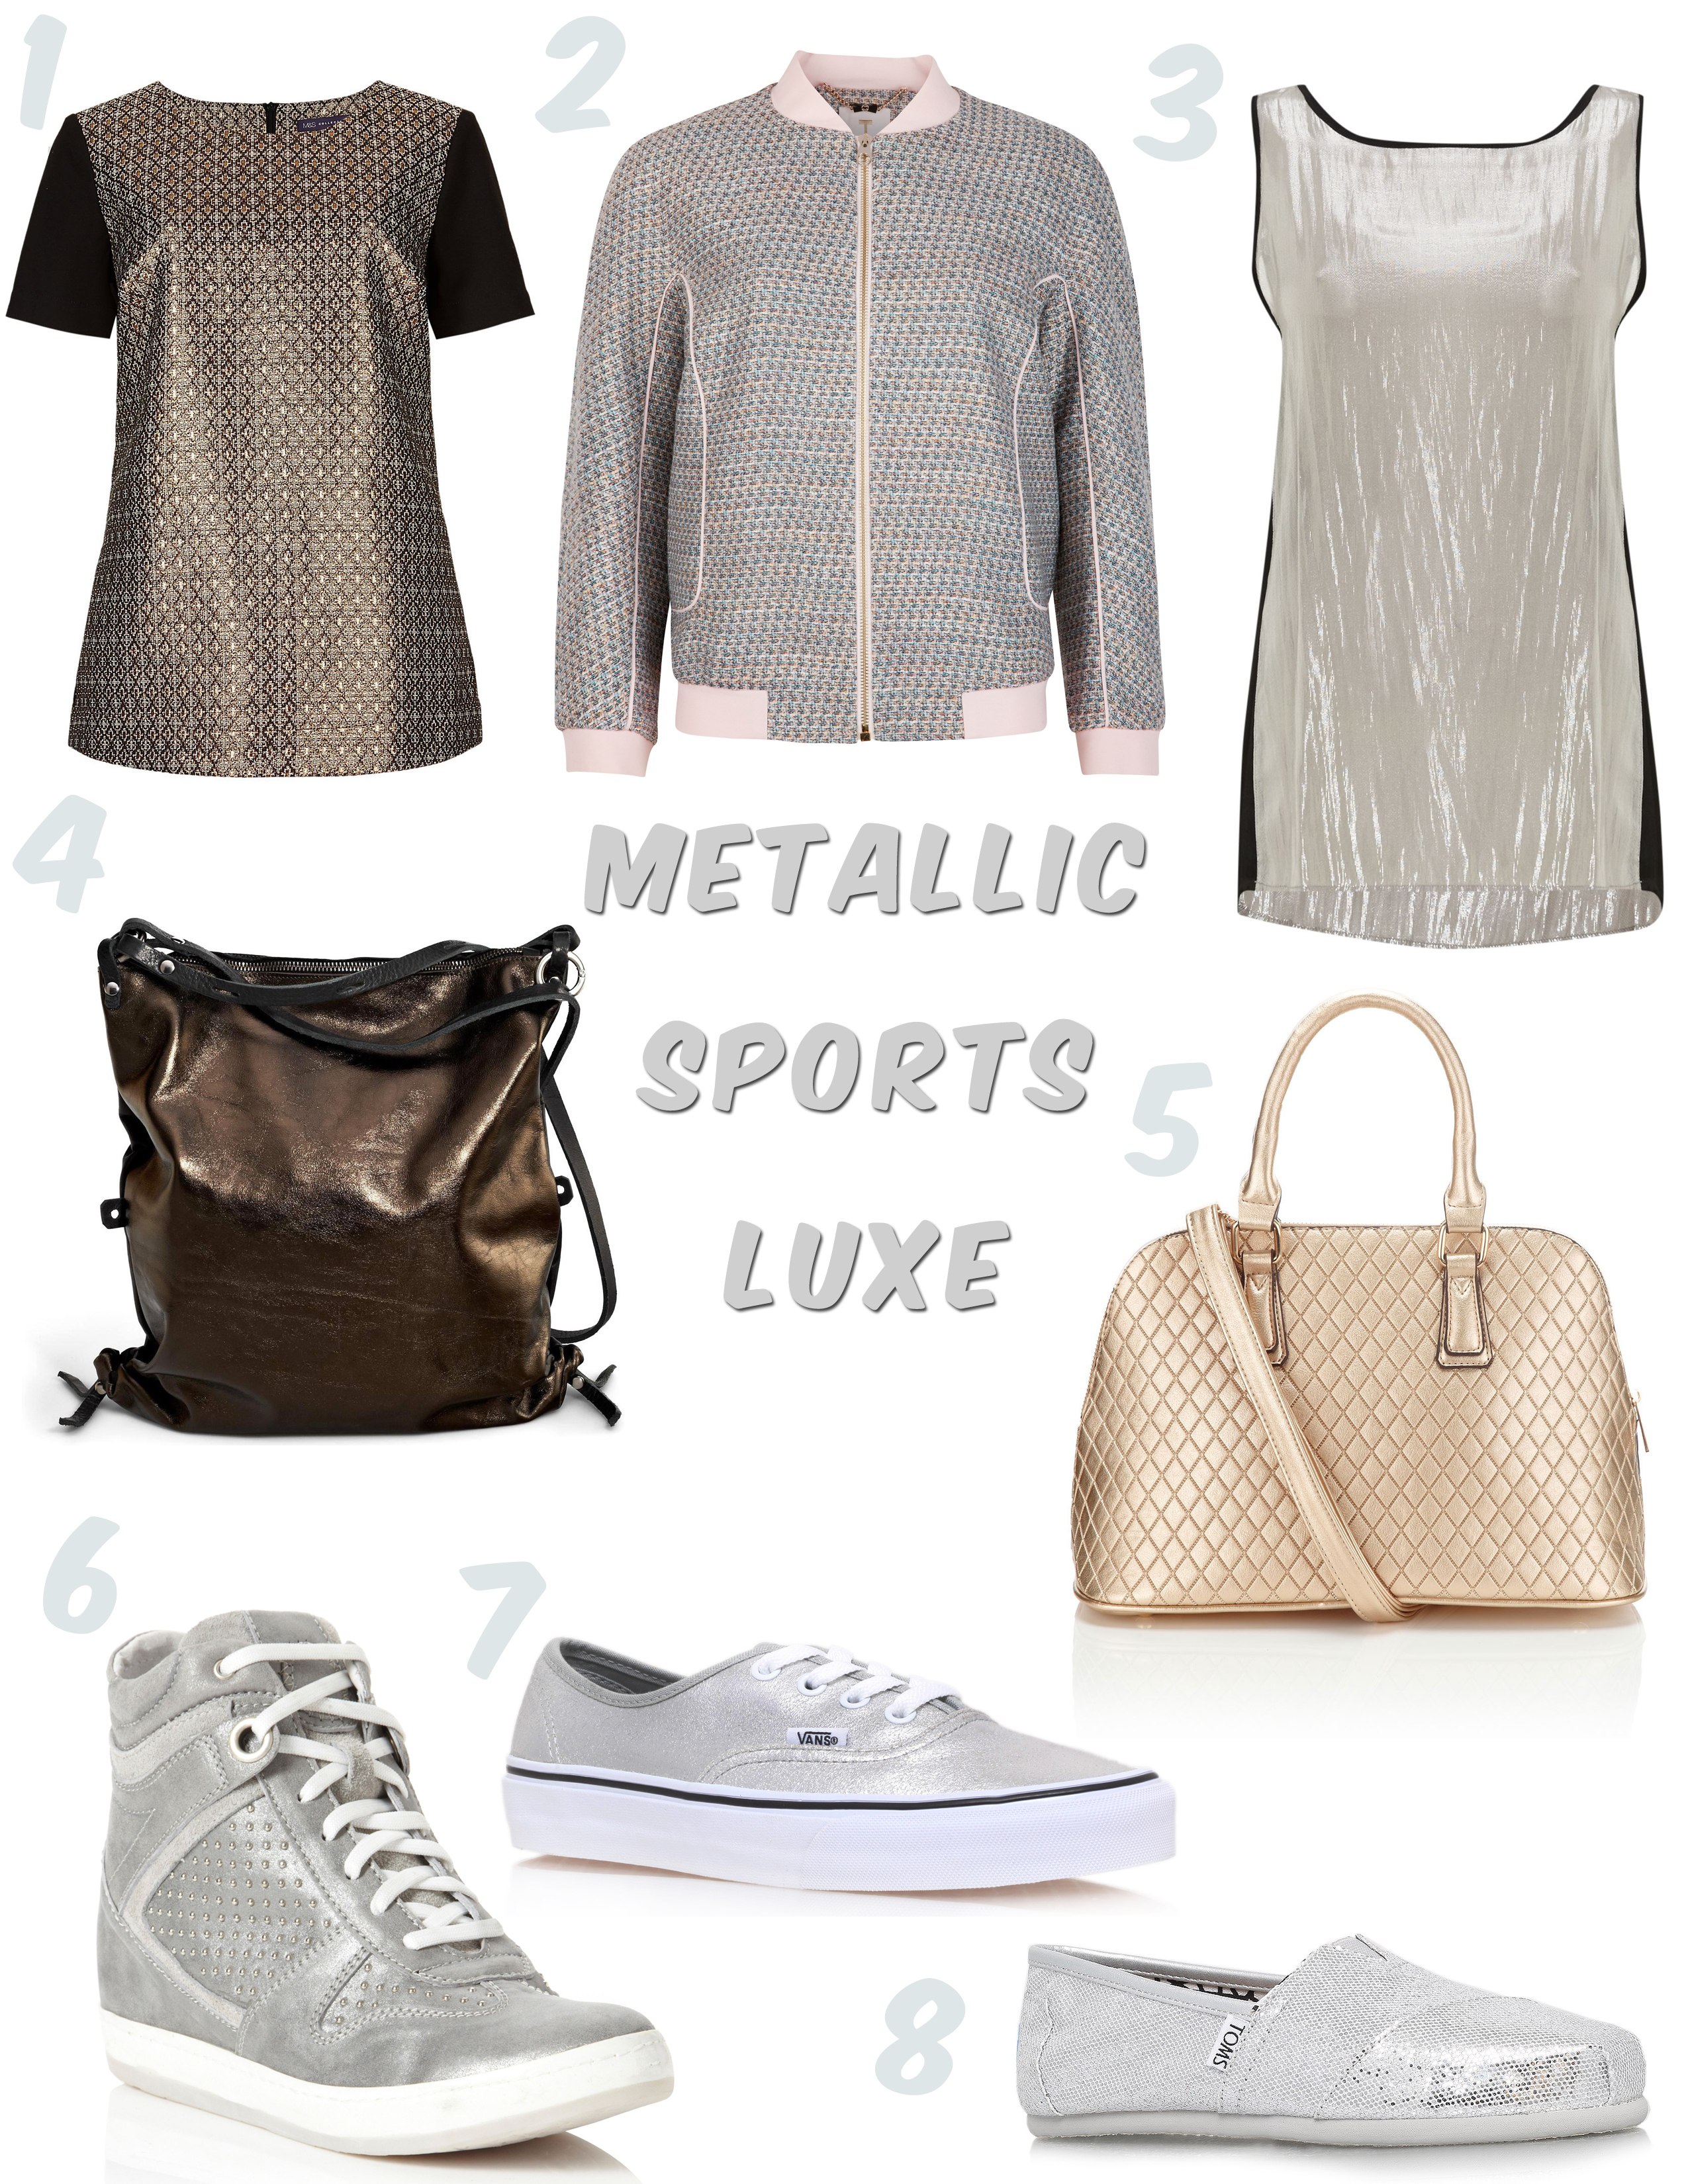 metallic-sports-luxe